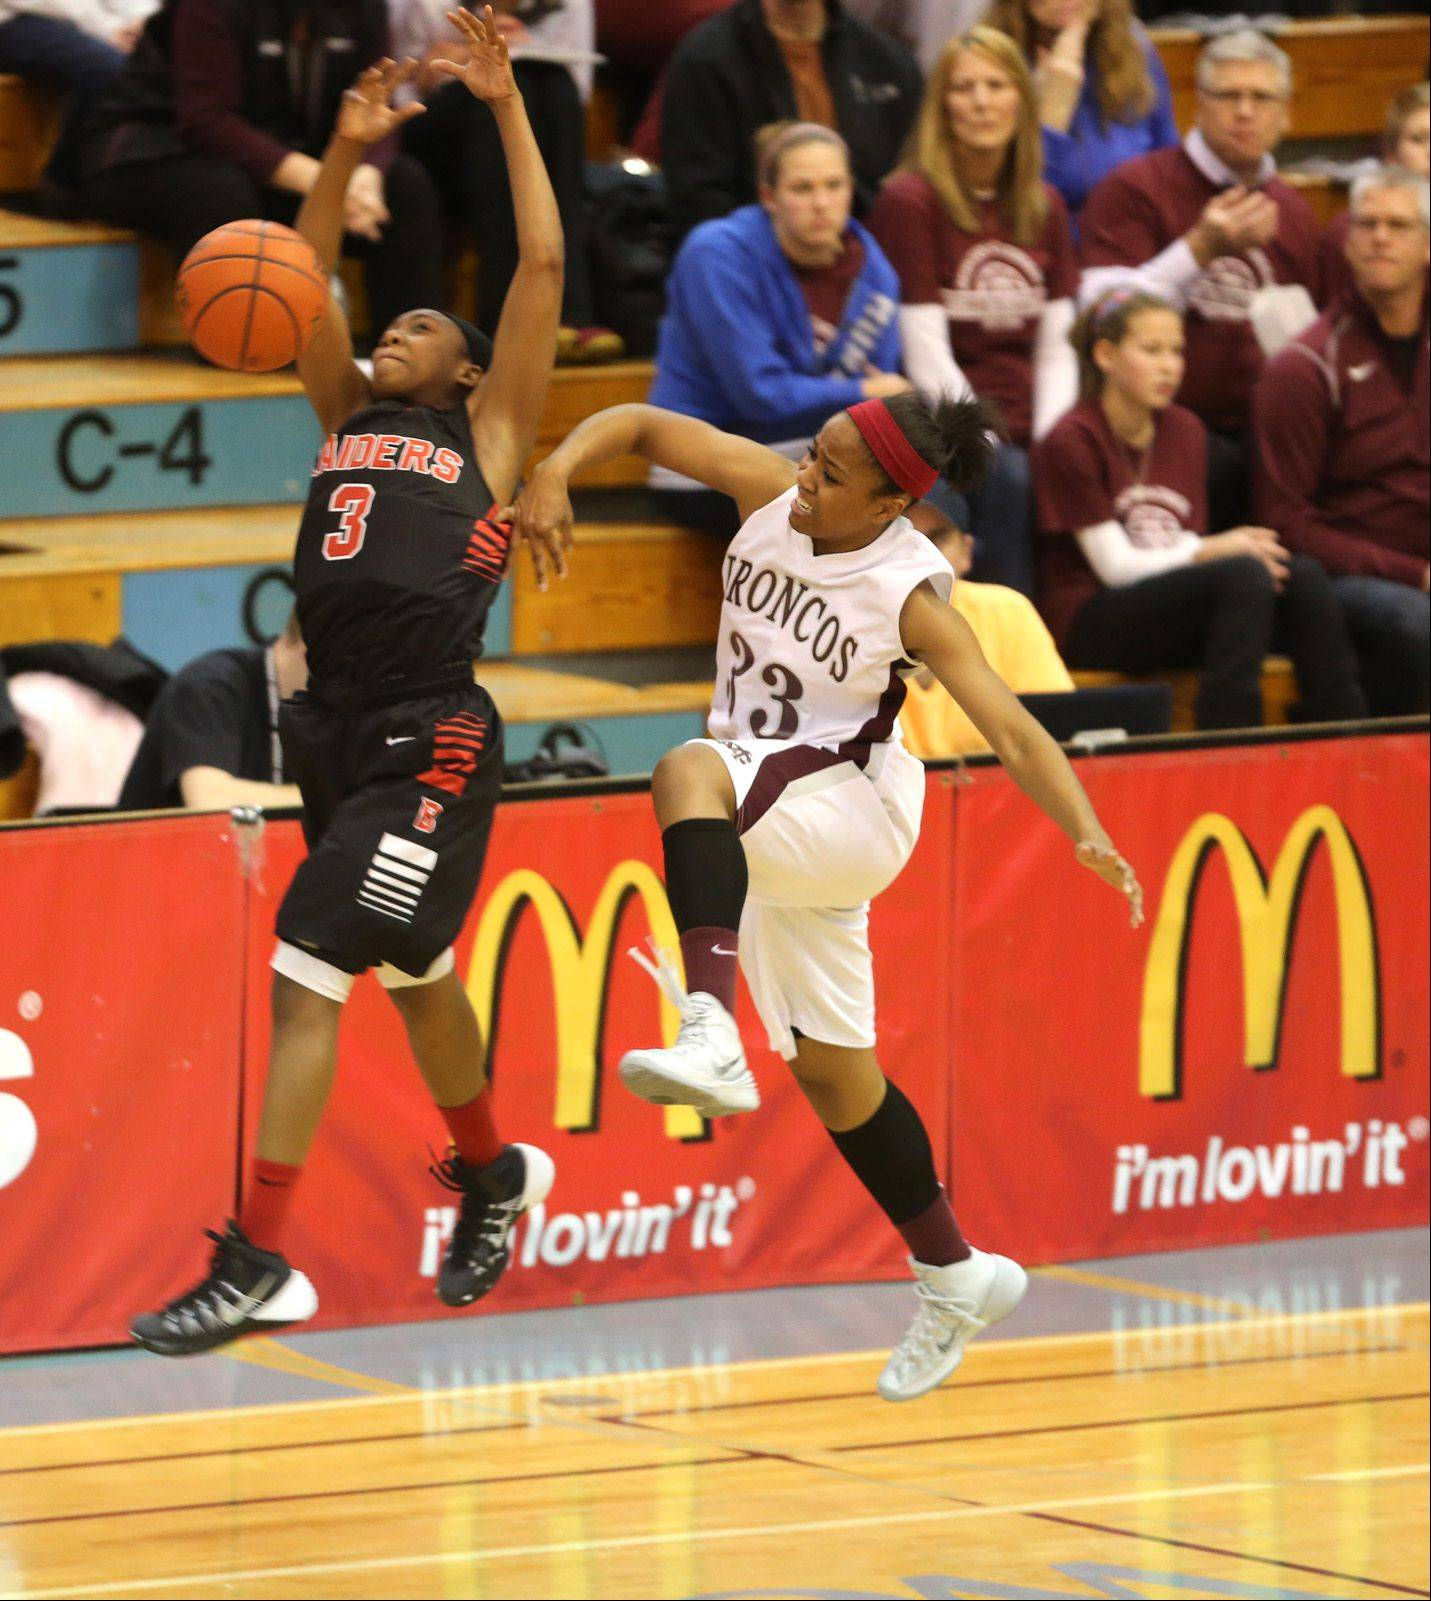 Daniel White/dwhite@dailyherald.com Montini's battles Bolingbrook's during the 24th annual McDonald's Shootout, a girls basketball tournament at Willowbrook High School.